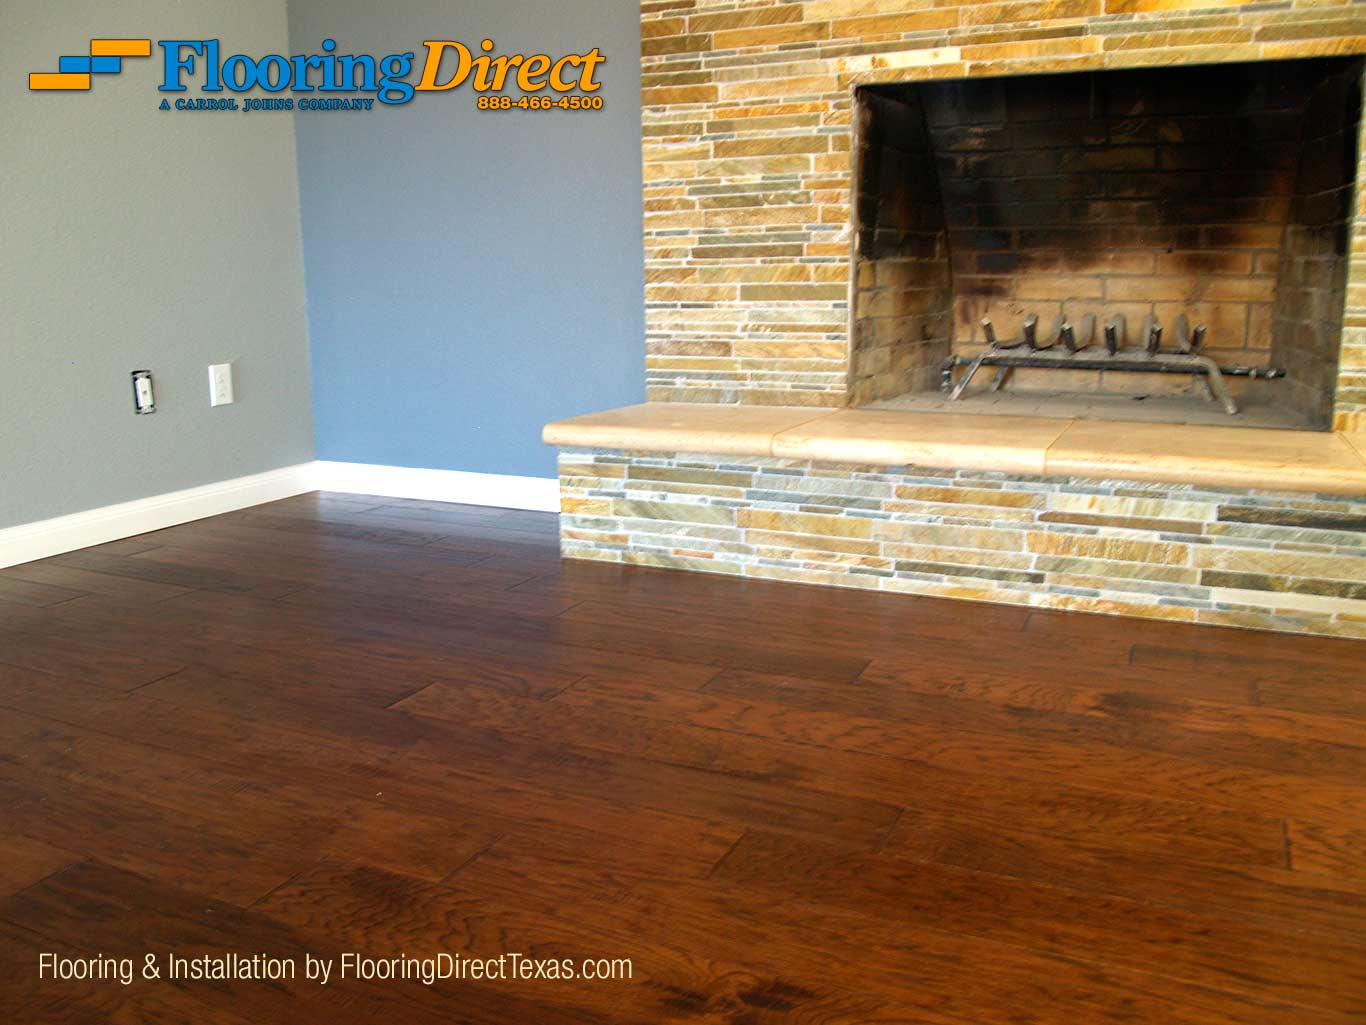 Hardwood Flooring In Plano Residence by FlooringDirectTexas.com